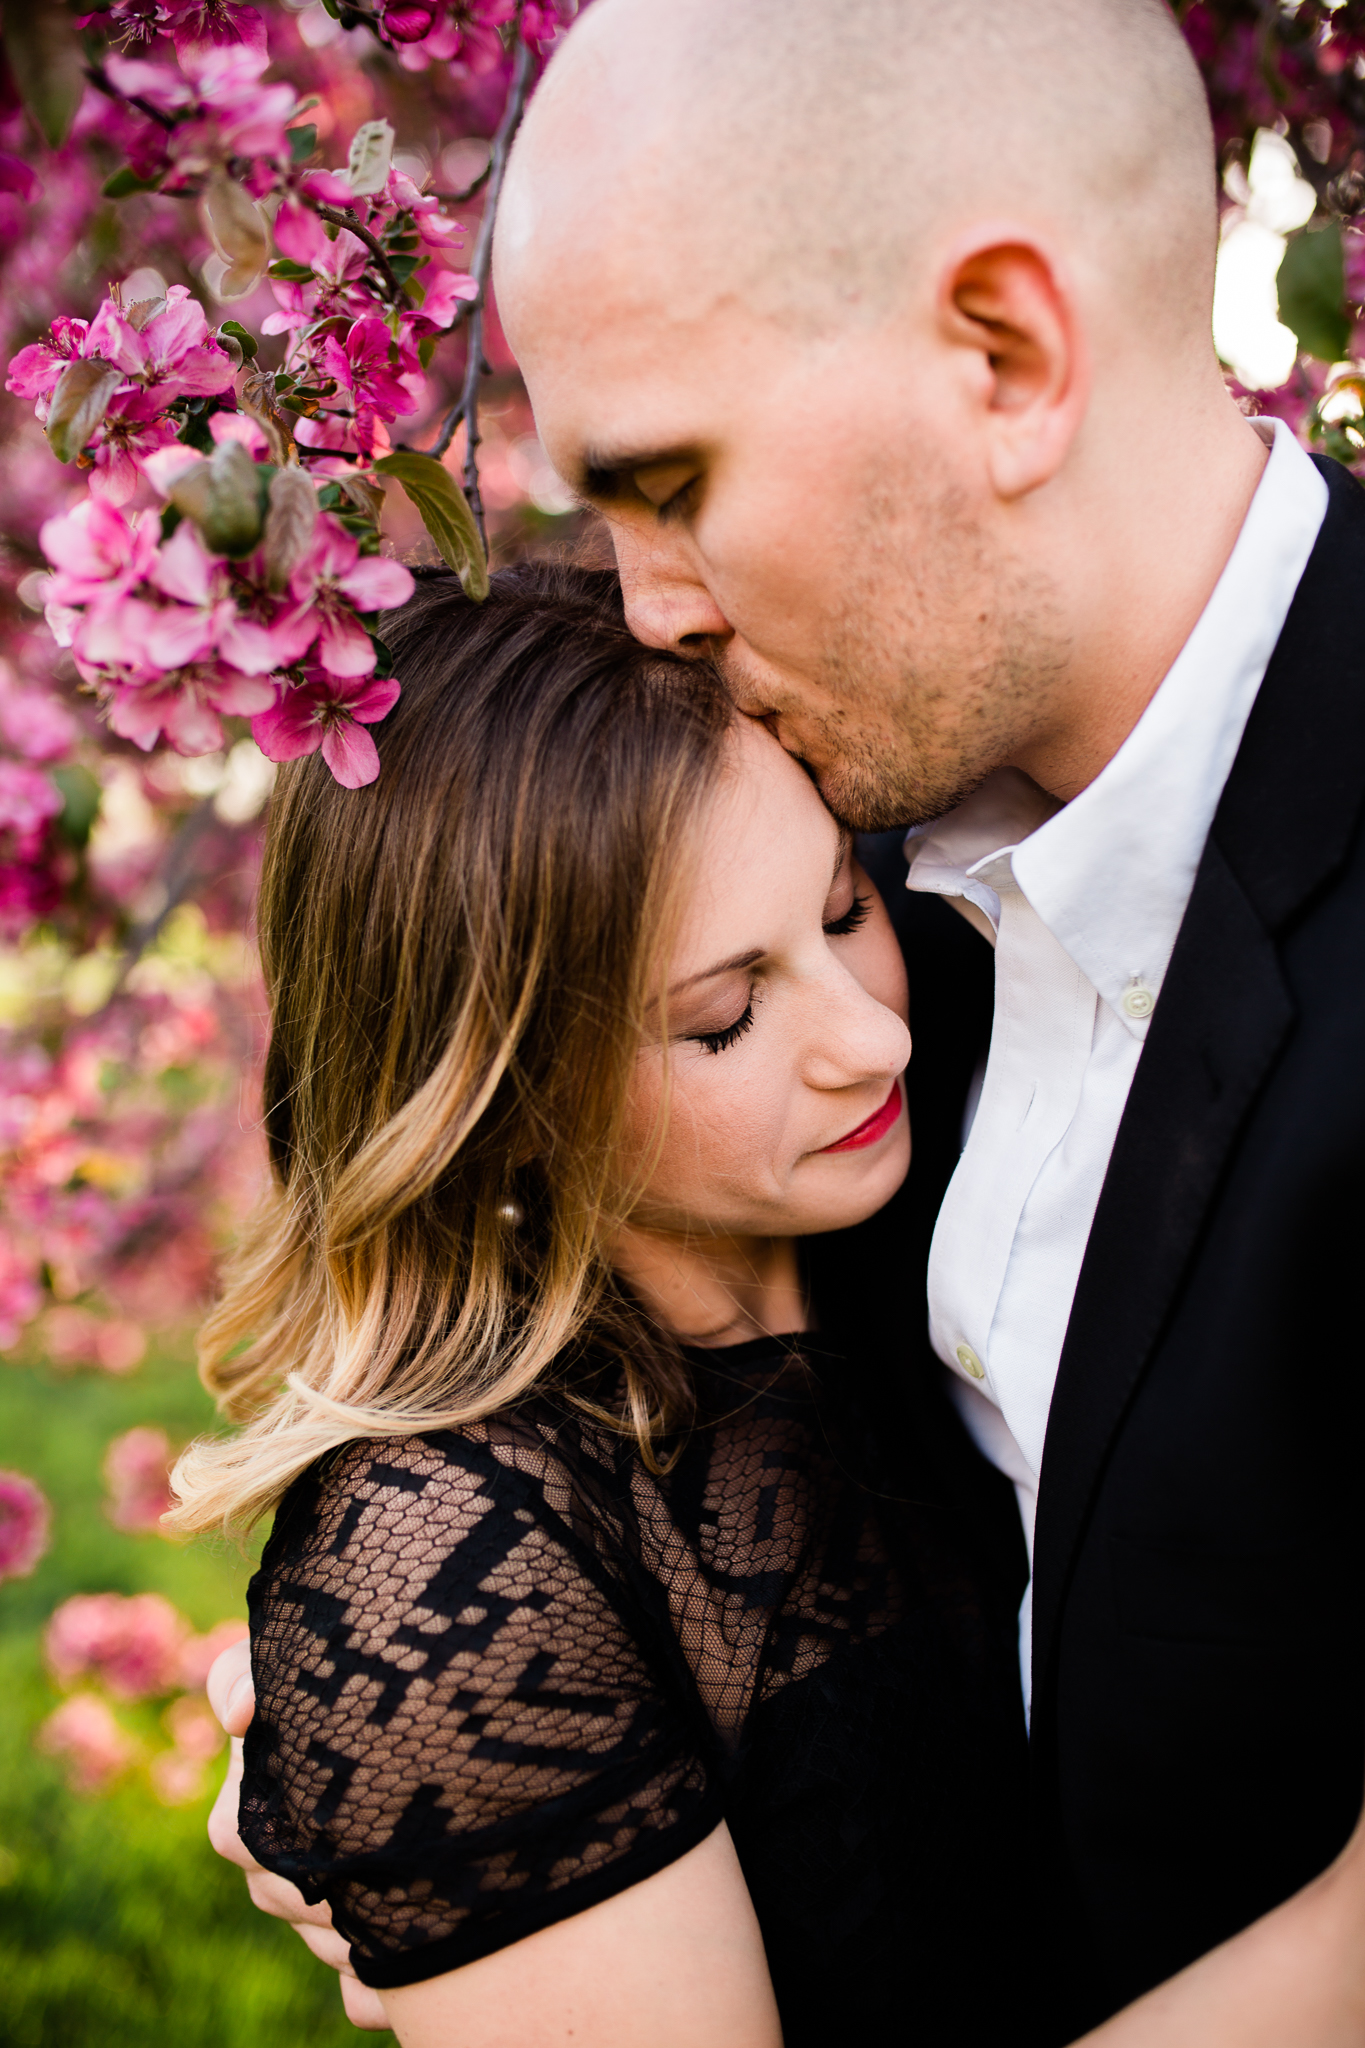 Man kisses his fiance's forehead under the apple blossoms, Kansas City emotive engagment photography, Rebecca Clair Photography